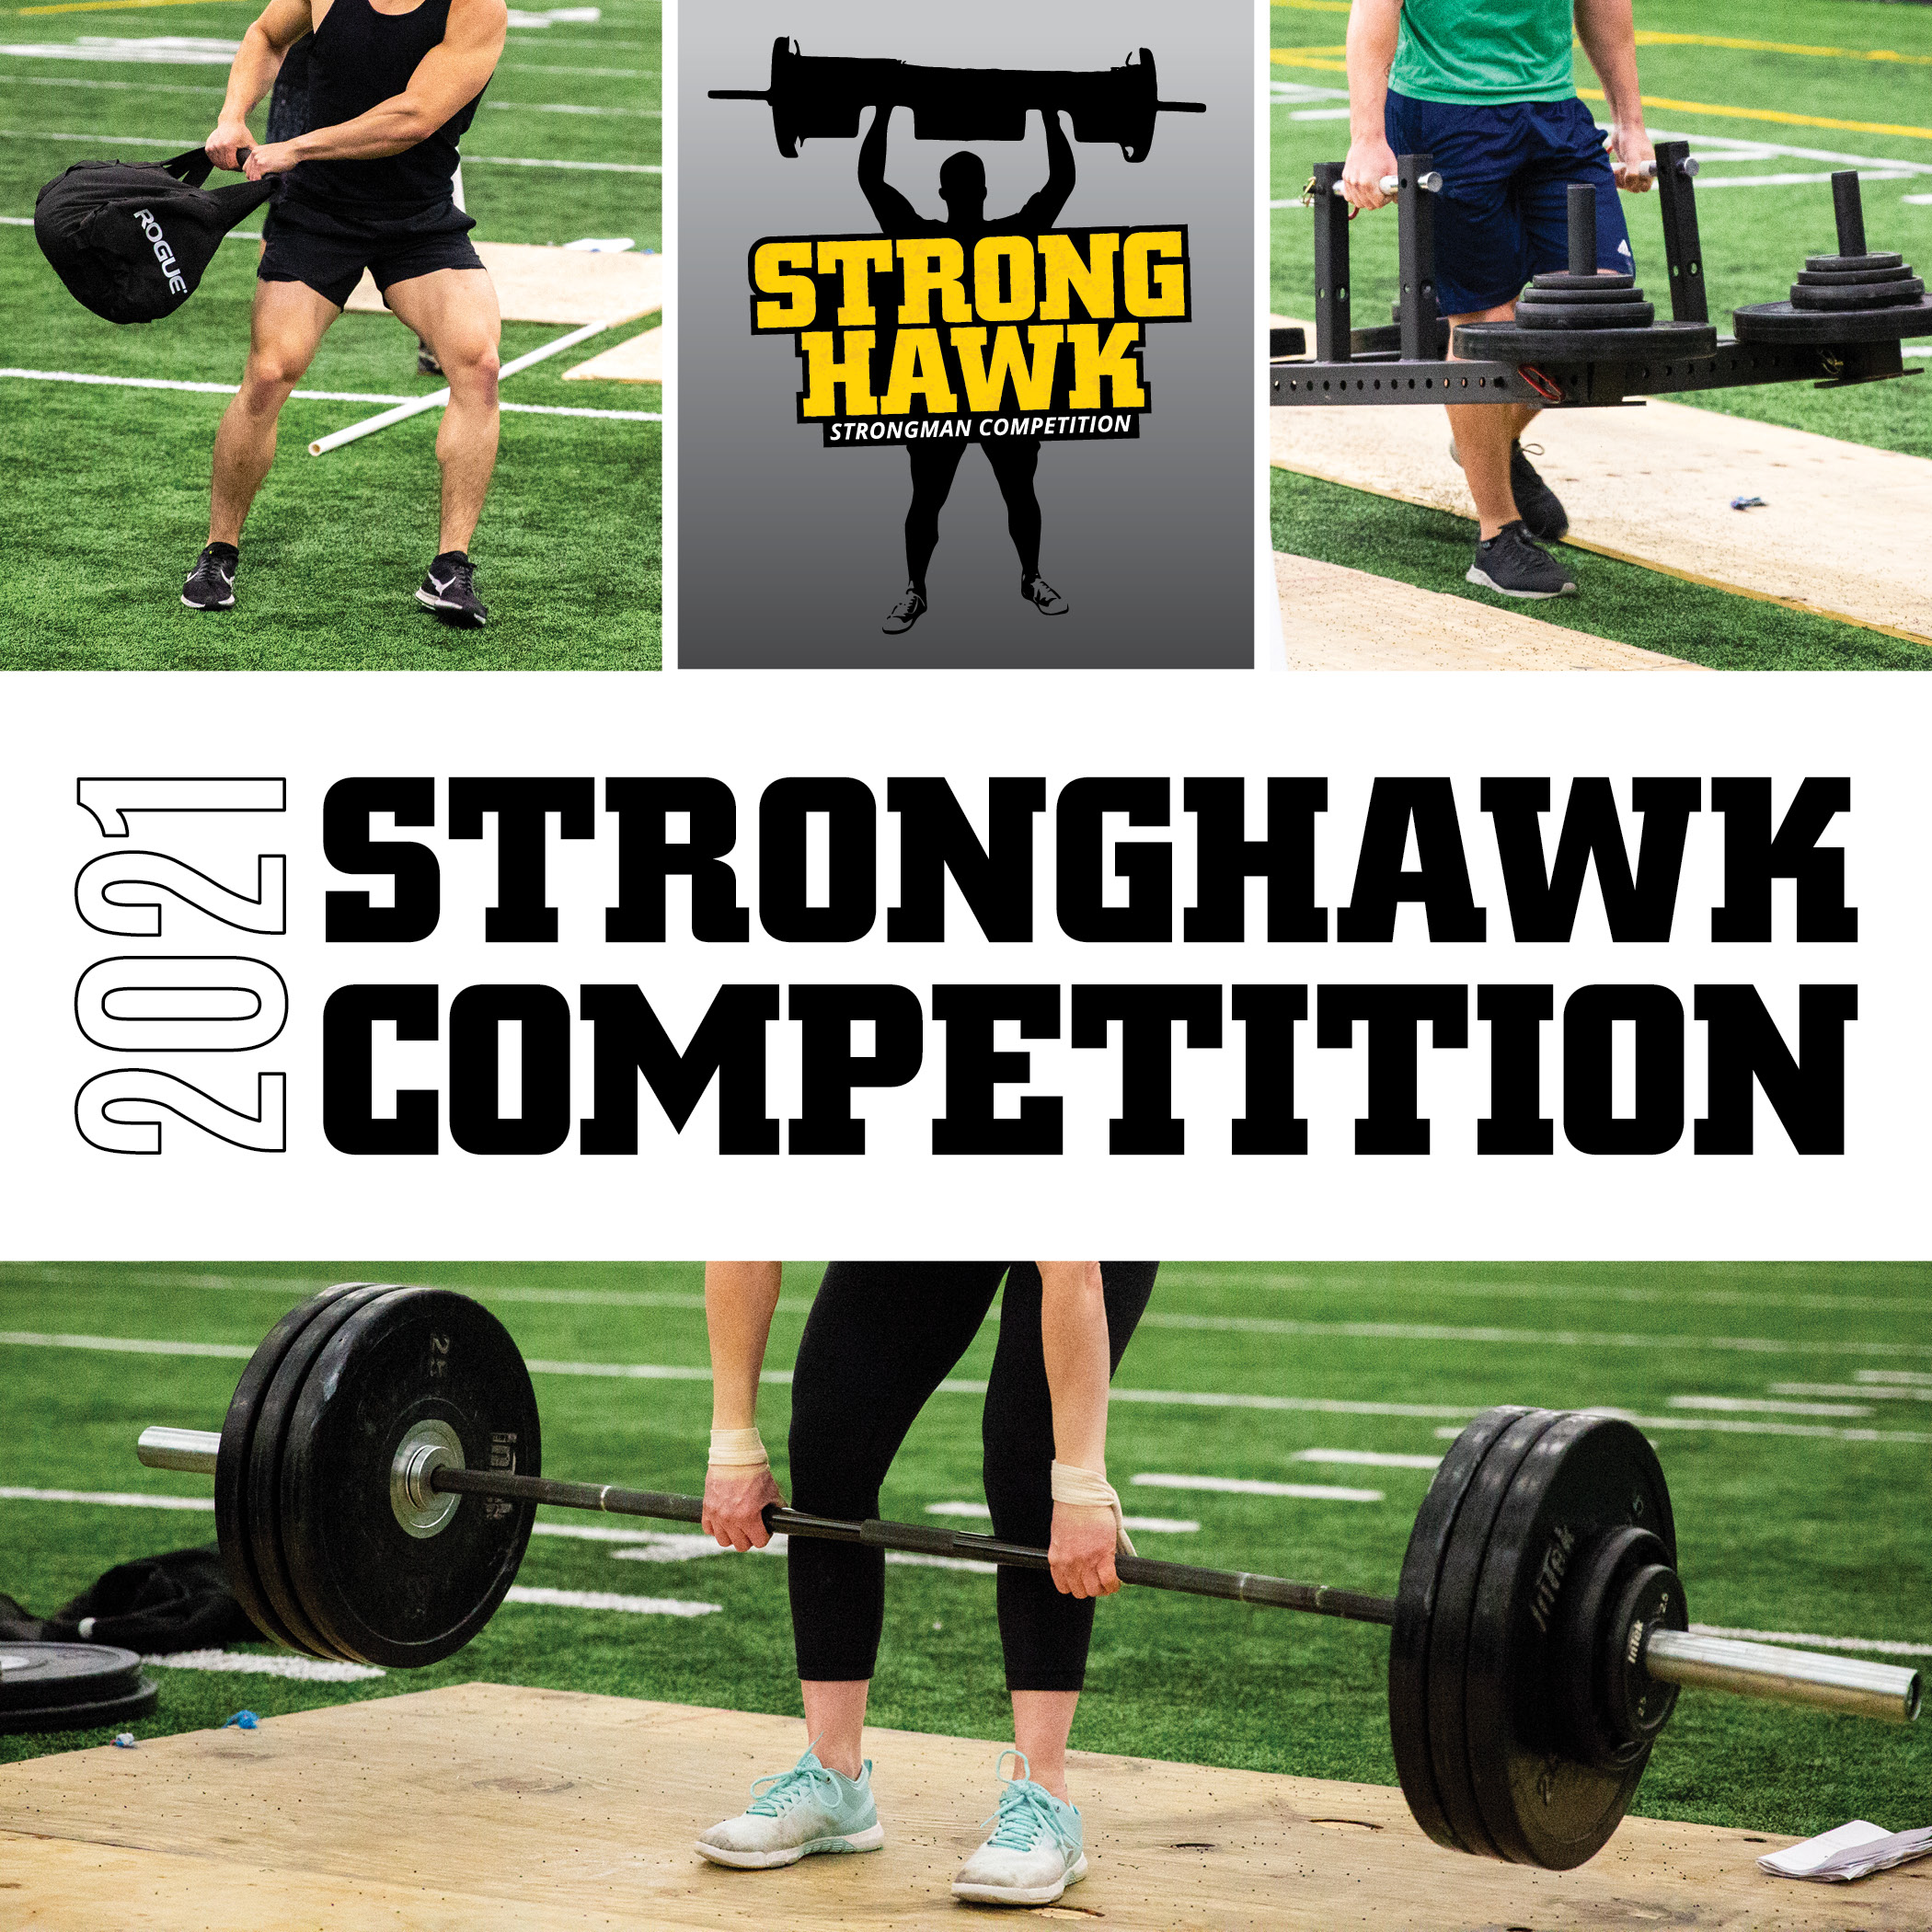 StrongHawk wordmark. StrongHawk Competition.